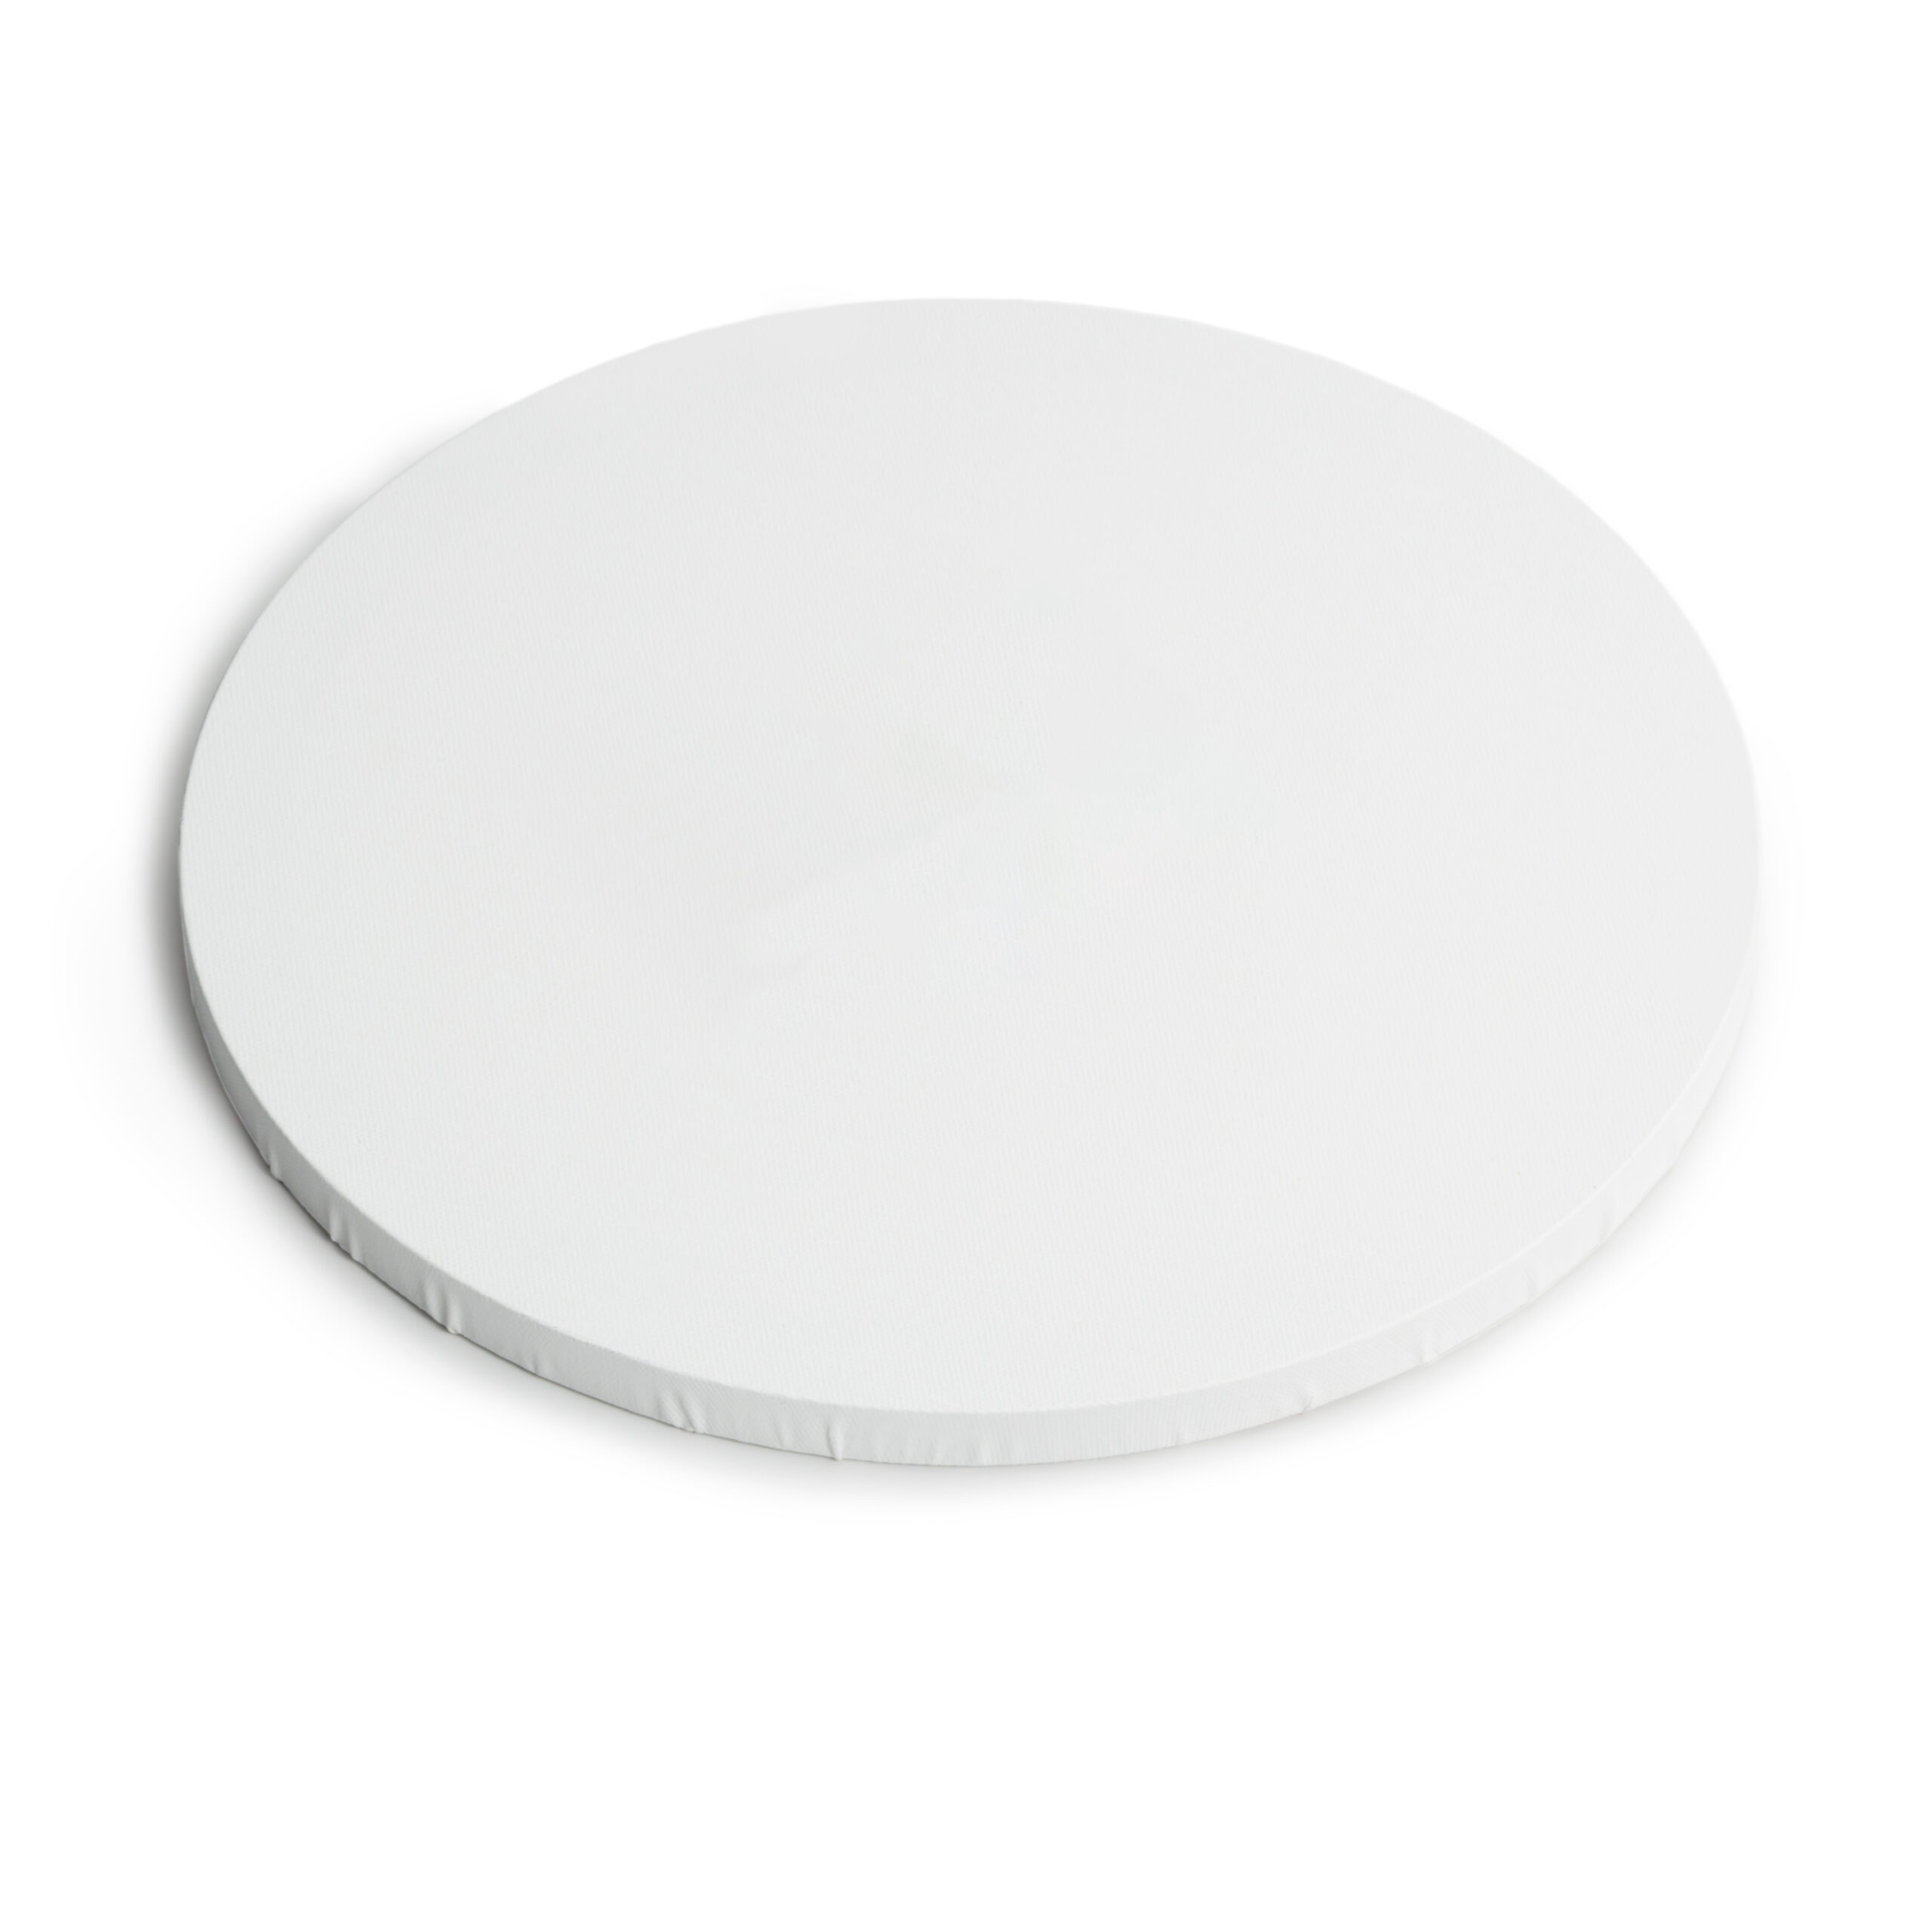 Loxley Round Stretched Canvas – 18mm Depth